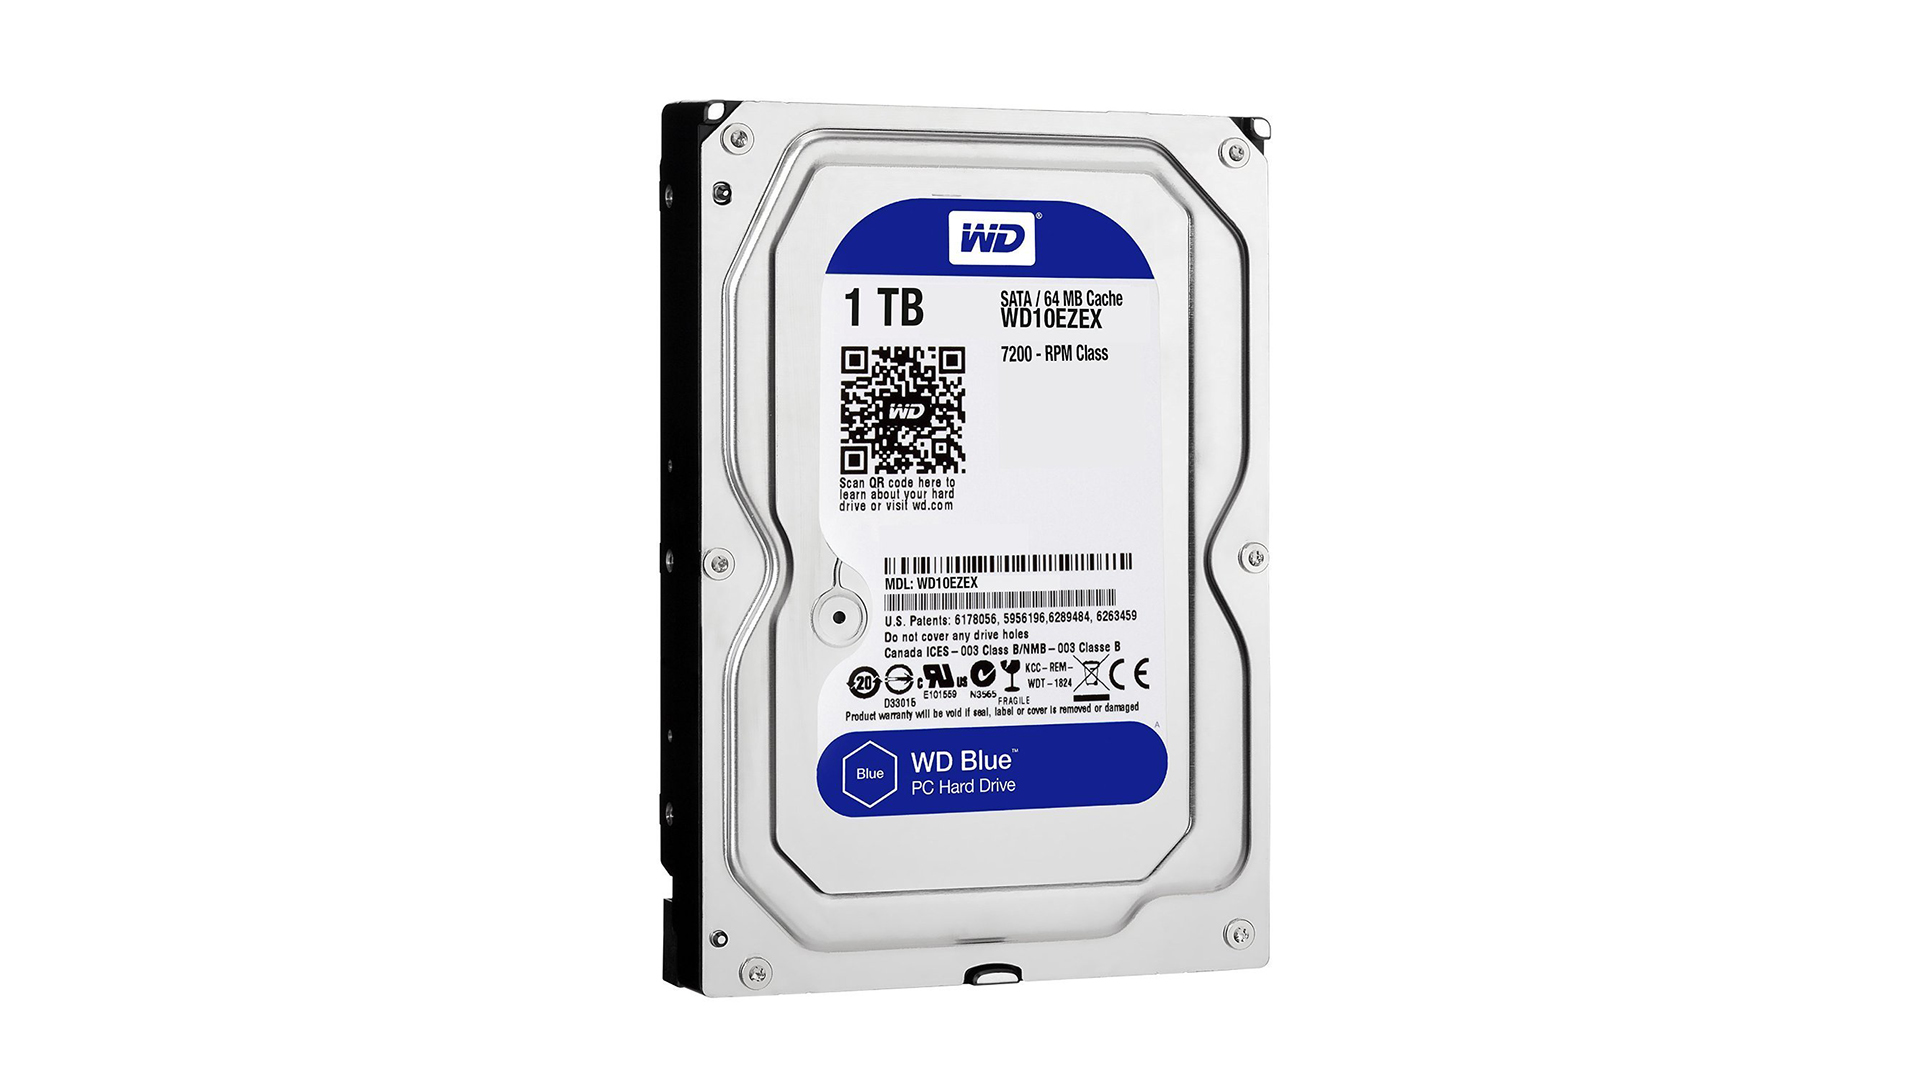 Best budget hard drive: WD Blue Desktop